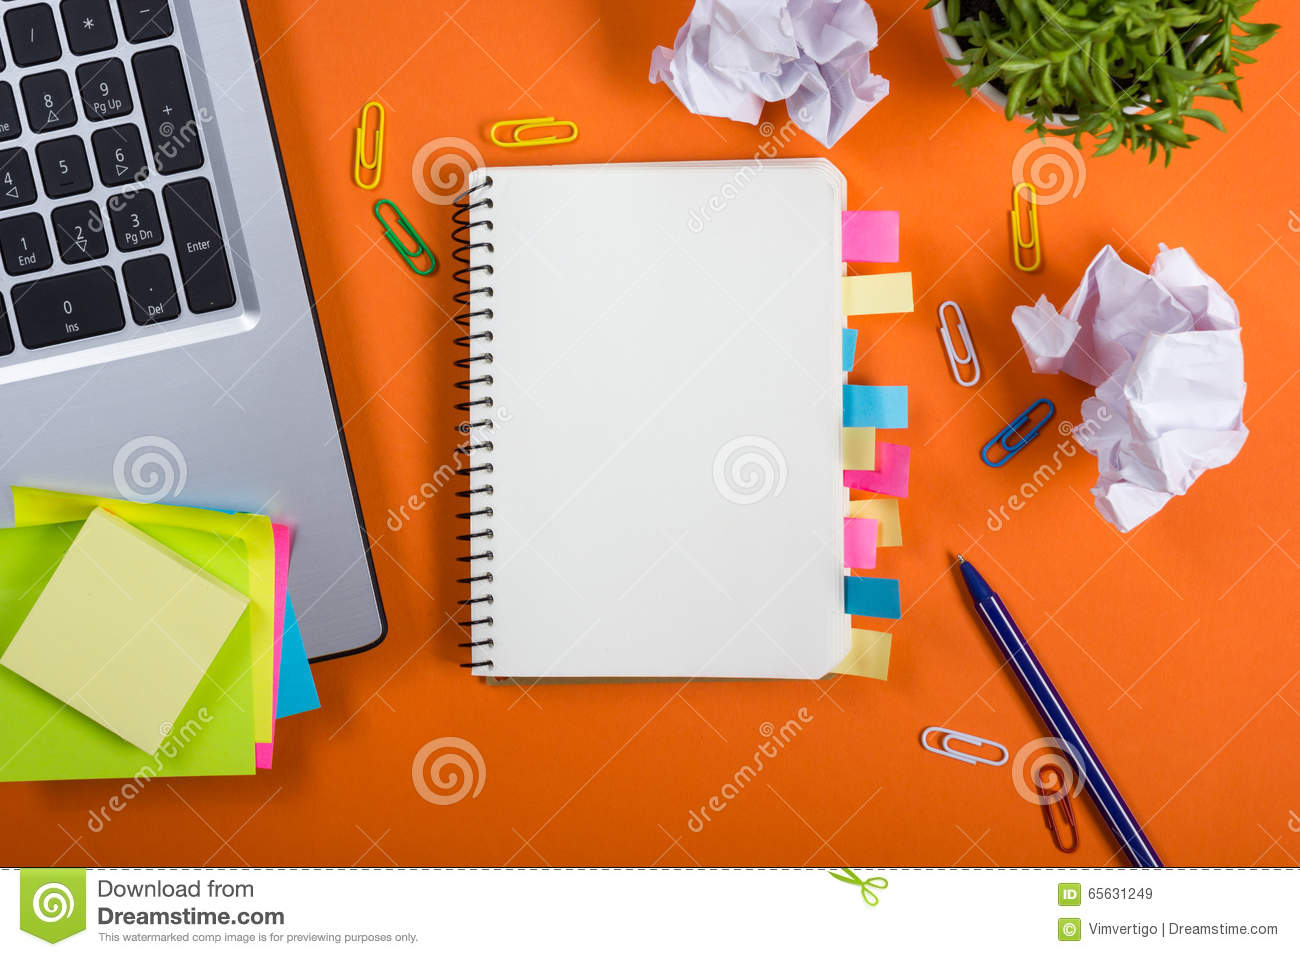 Office table desk with set of colorful supplies, white blank note pad, cup, pen, pc, crumpled paper, flower on orange